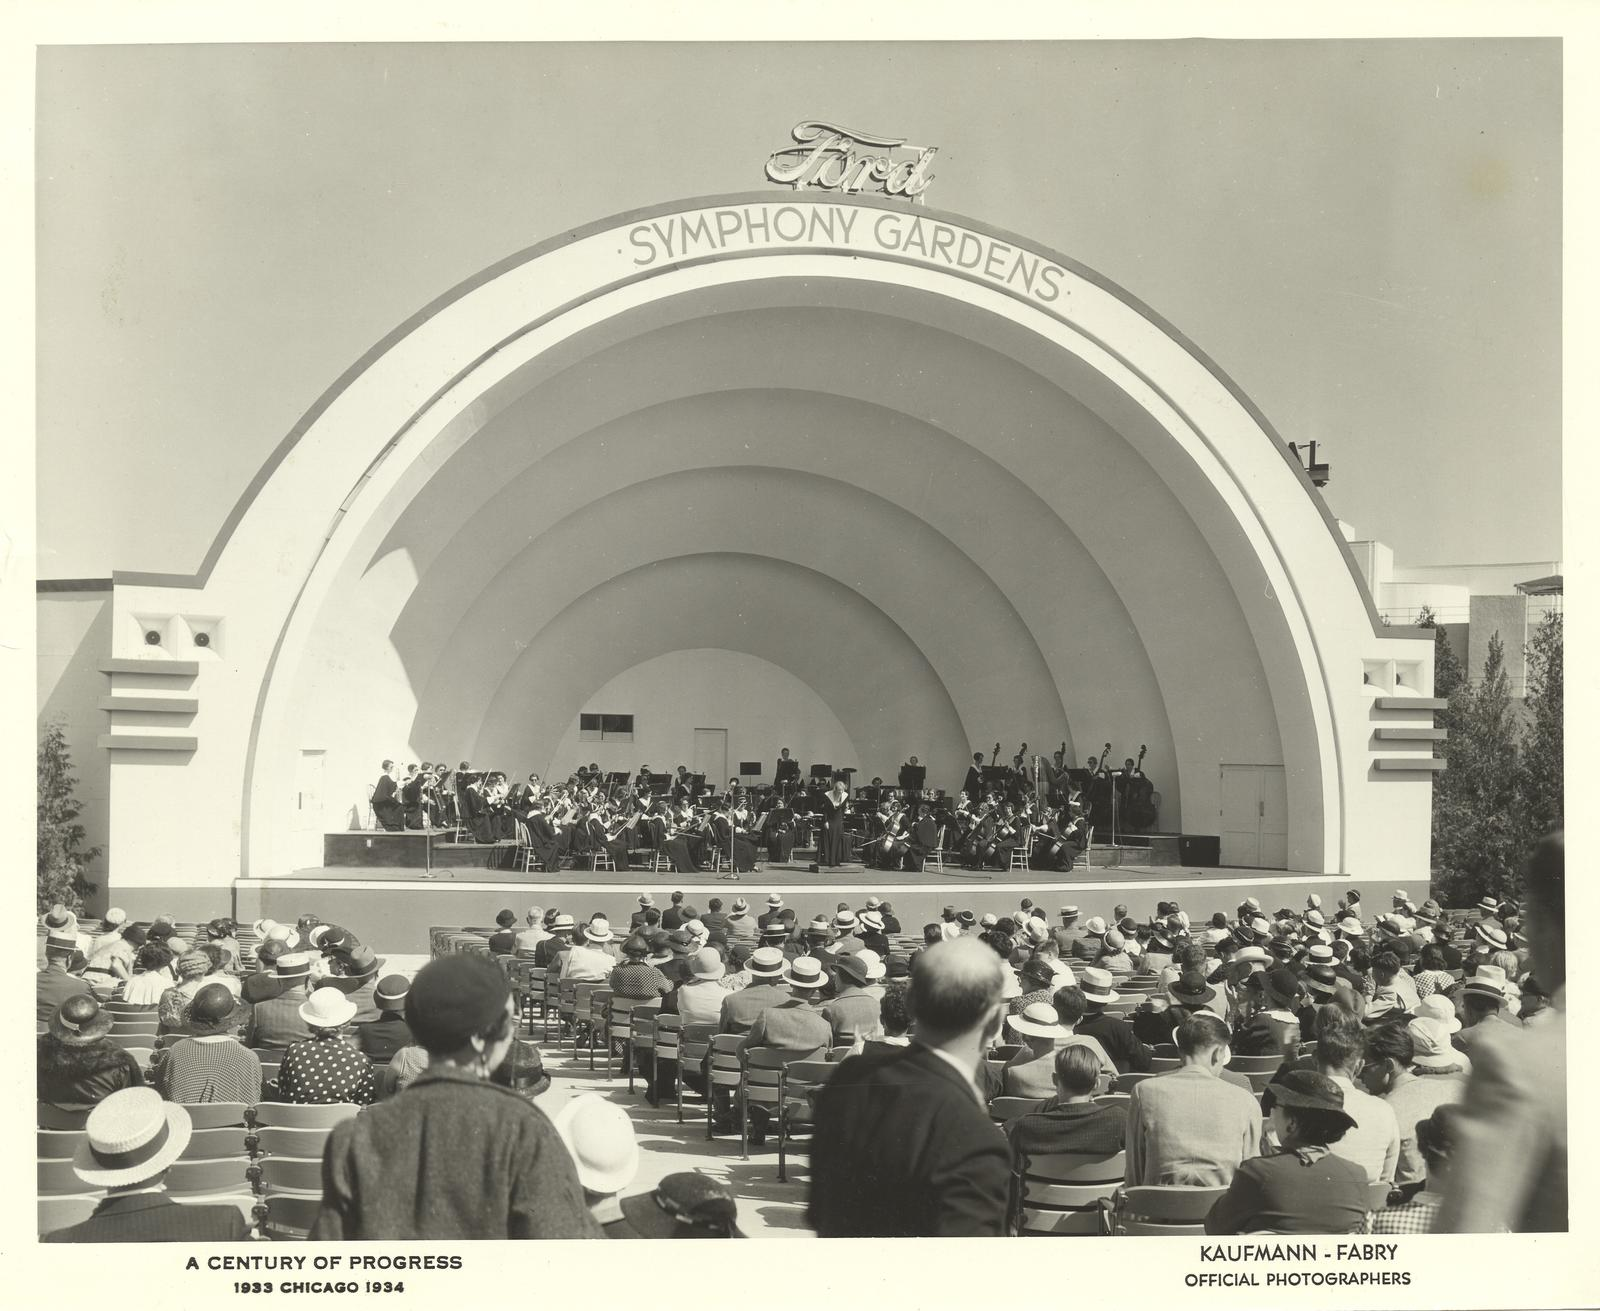 [An audience view of an orchestral performance at Ford's Symphony Gardens bandshell at the Century of Progress International Exposition, 1933-1934.]